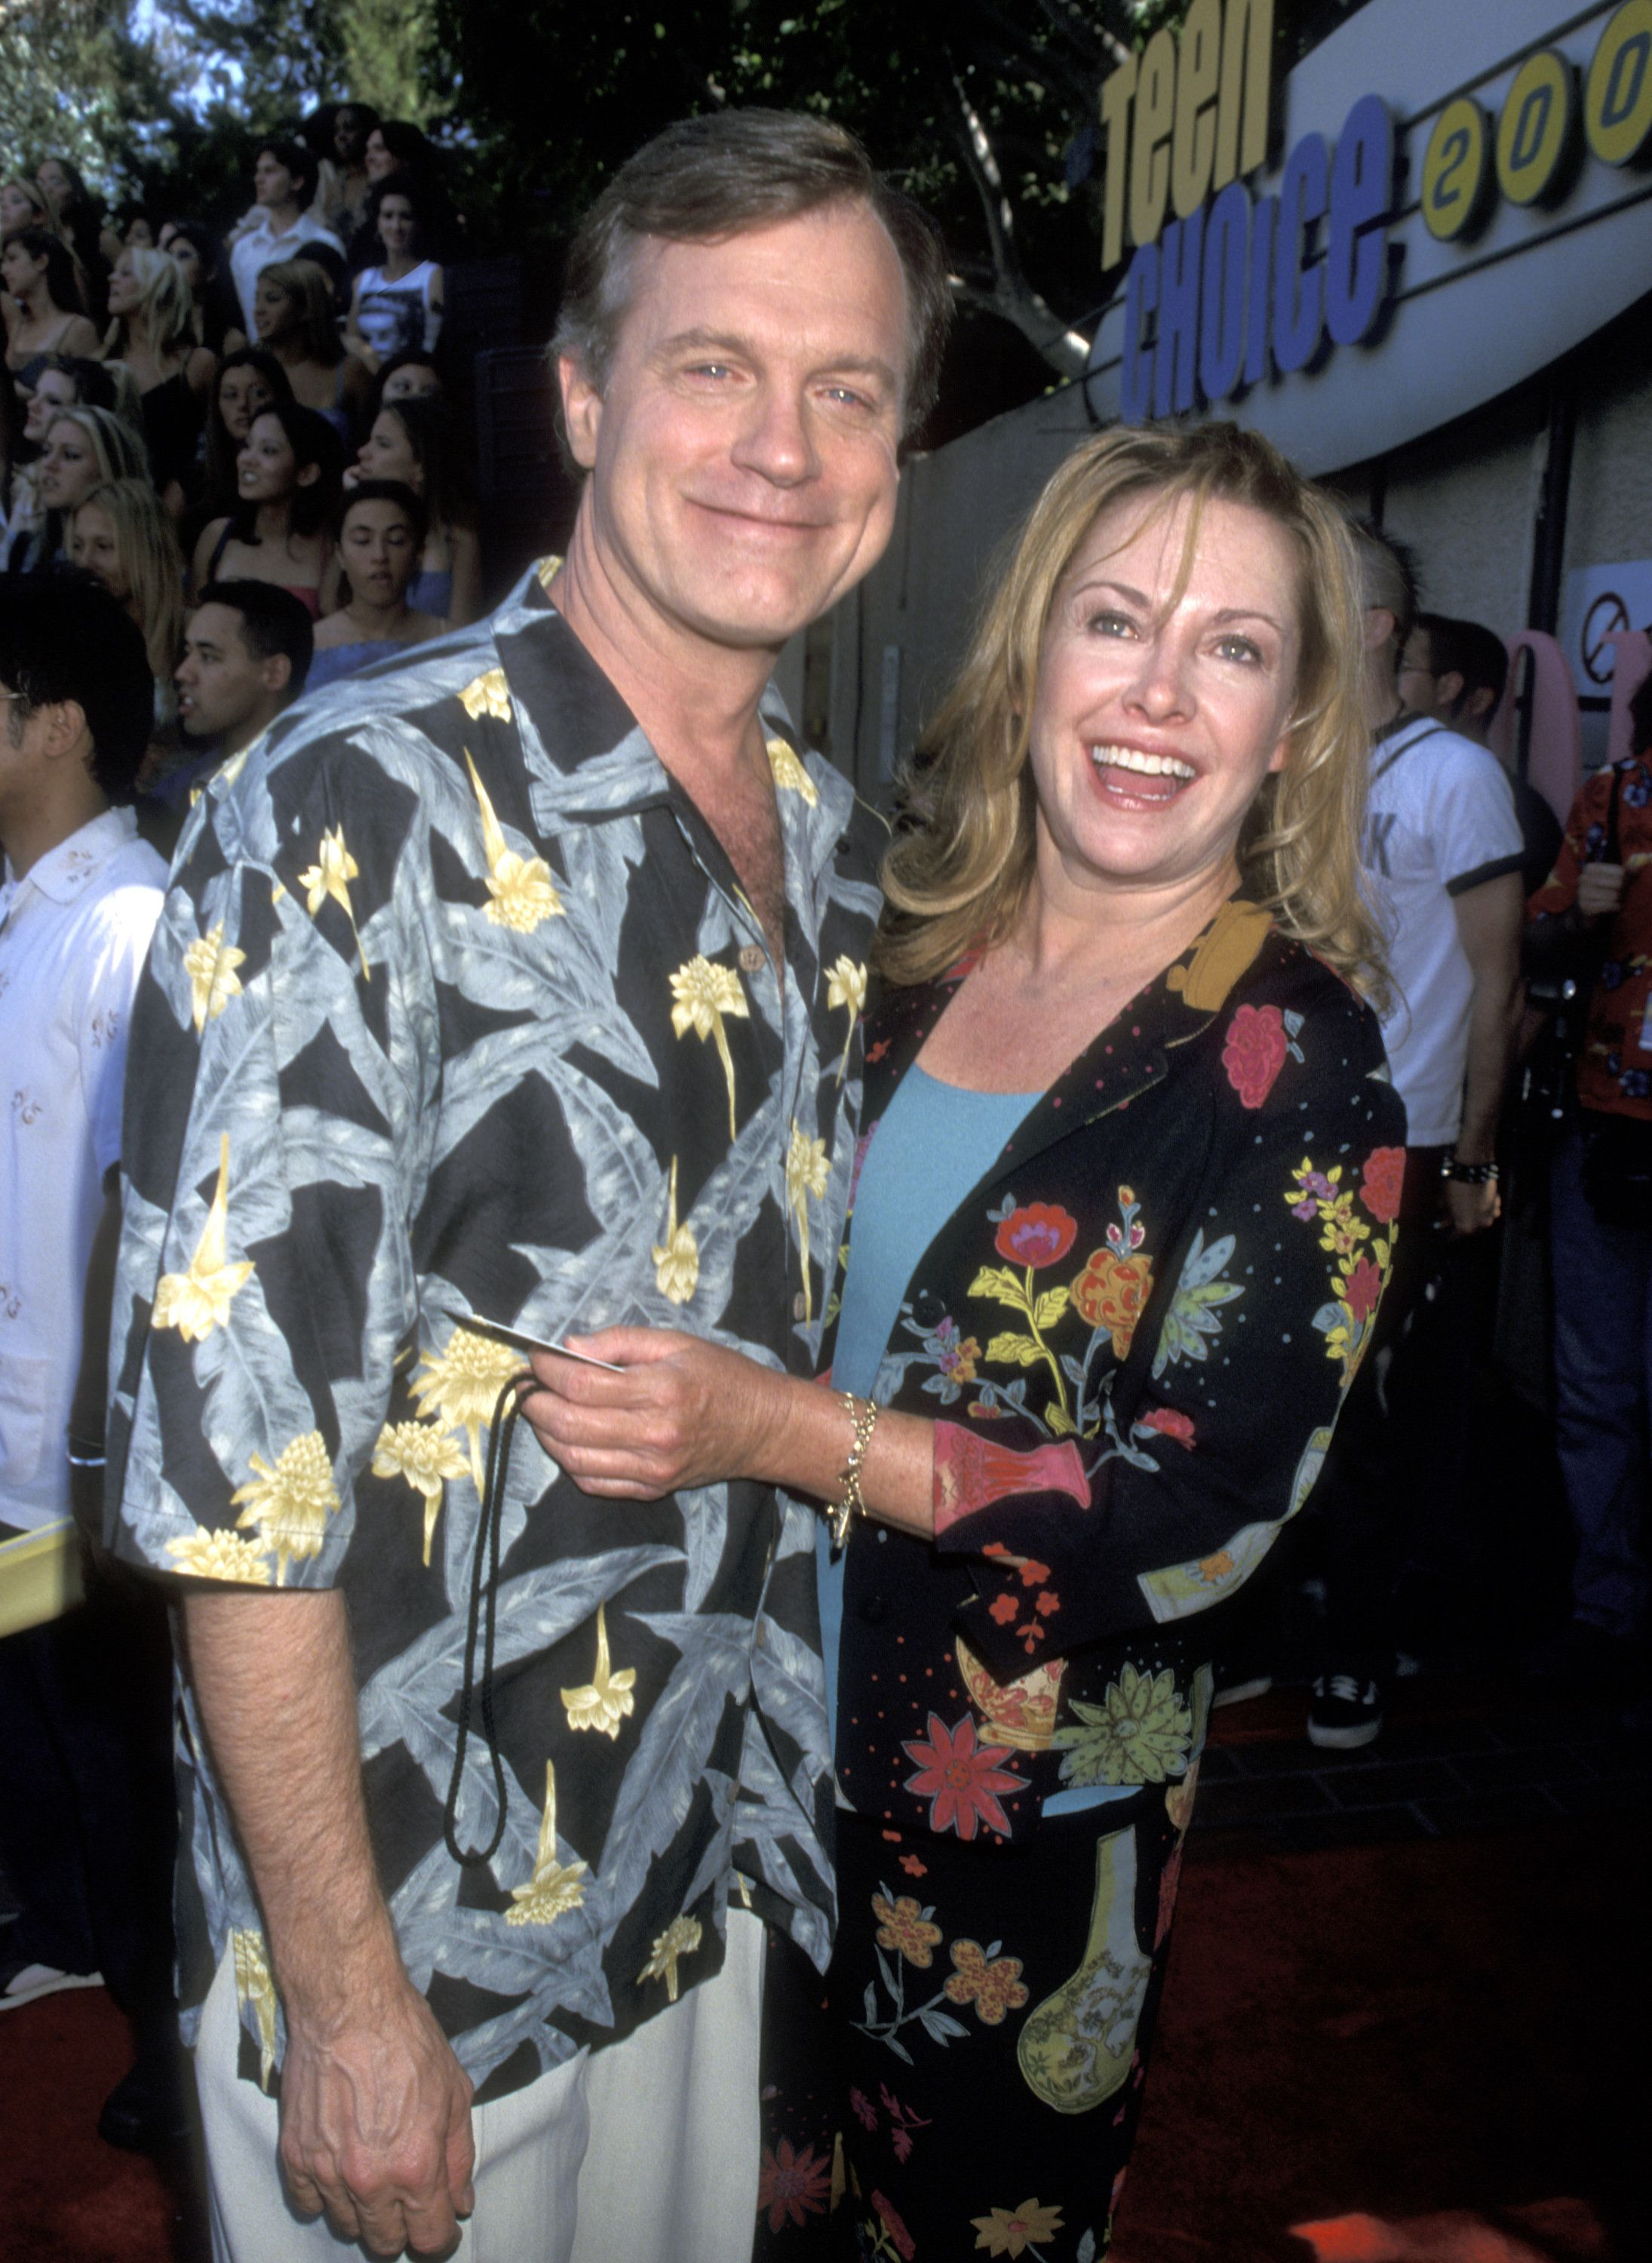 Actors Stephen Collins and Catherine Hicks attend the Third Annual Teen Choice Awards on August 12, 2001 at Universal Amphitheatre in Universal City, California. (Photo by Ron Galella, Ltd./WireImage)